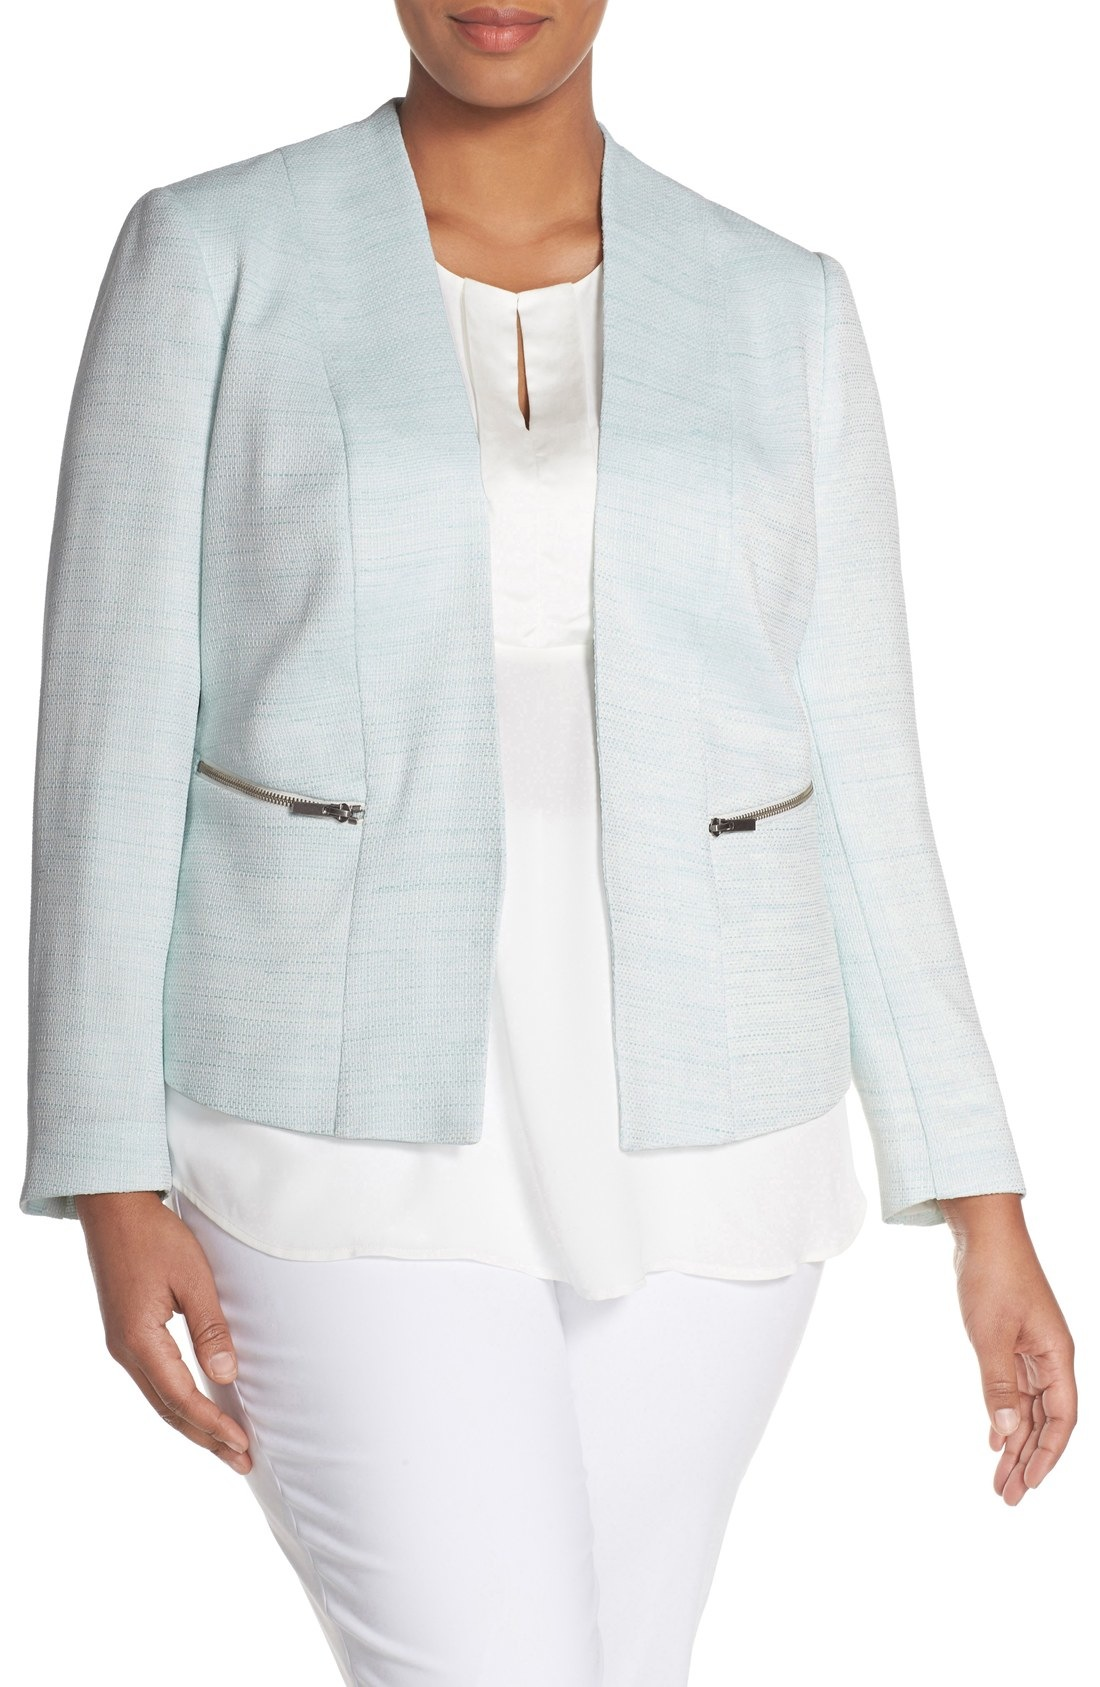 5 tweed plus size blazers for work